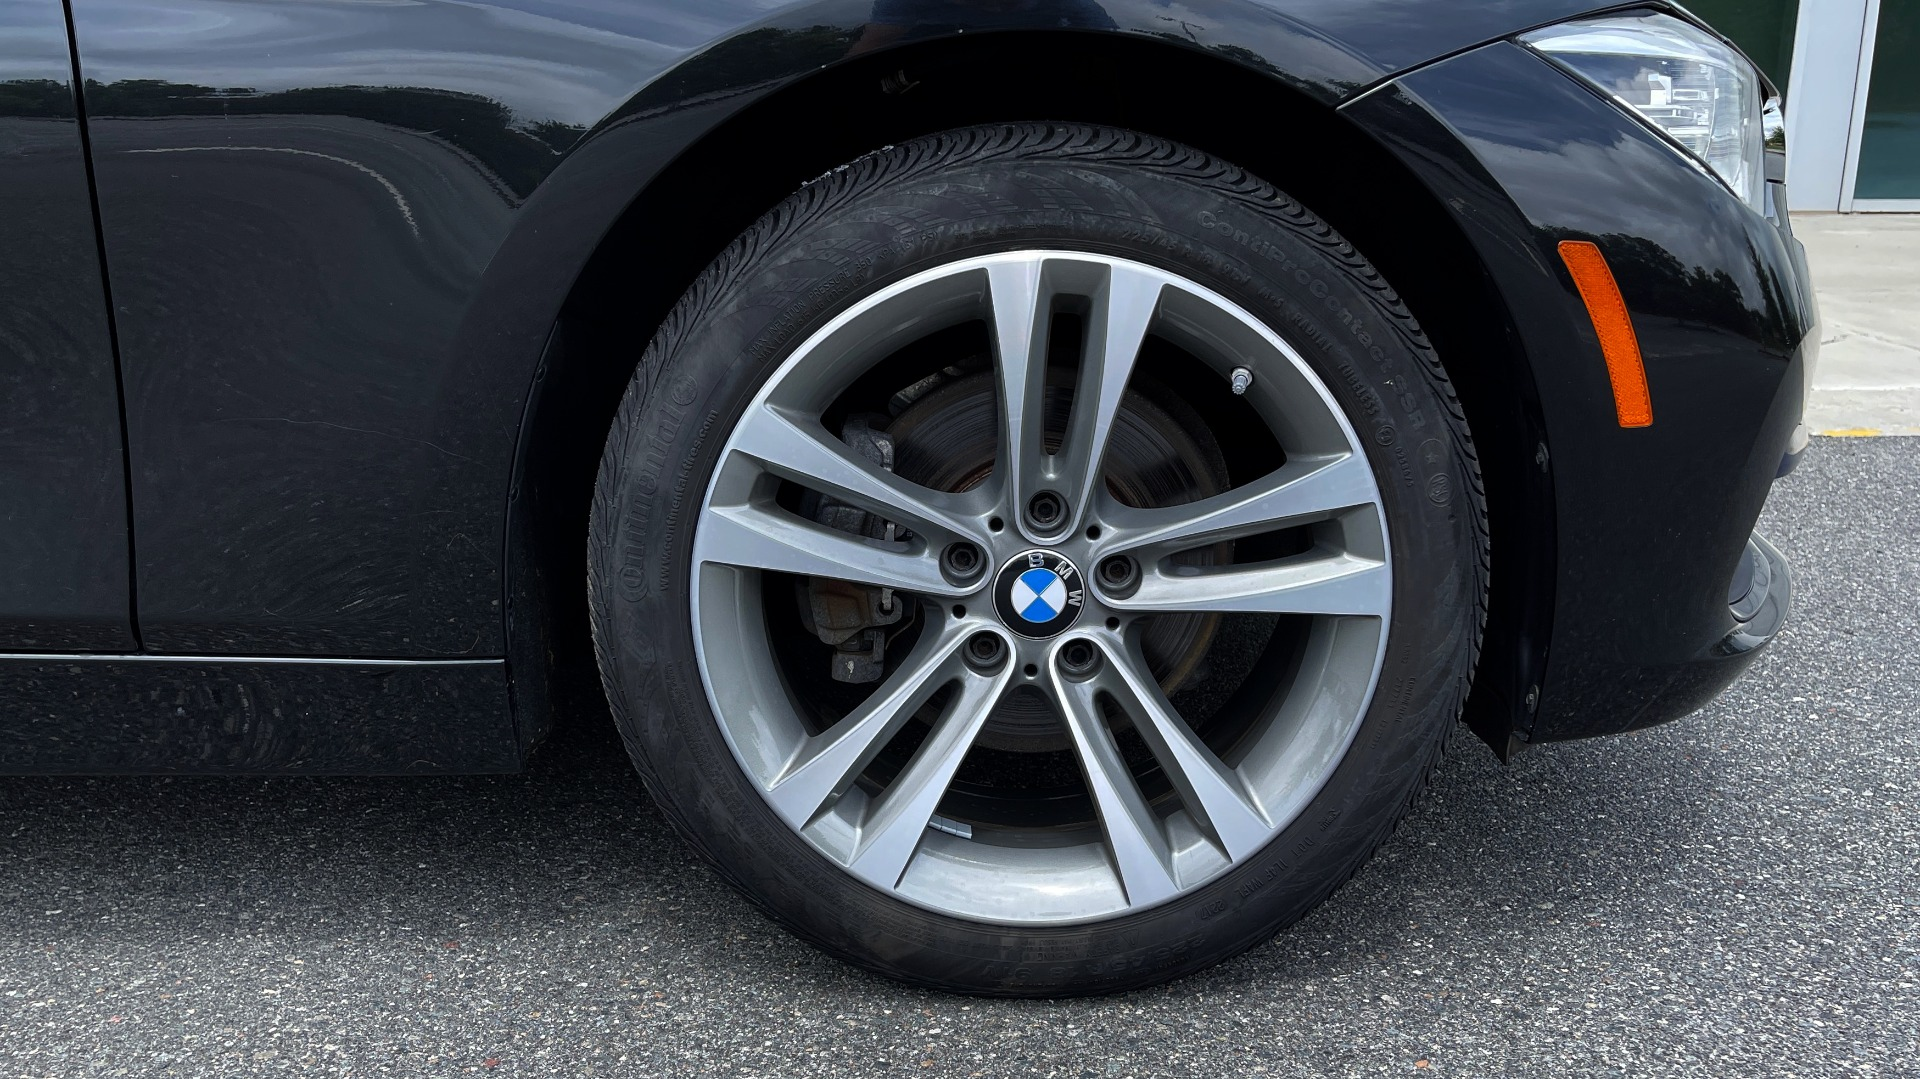 Used 2018 BMW 3 SERIES 330IXDRIVE / NAV / CONV PKG / ABSD / SUNROOF / REARVIEW for sale $29,599 at Formula Imports in Charlotte NC 28227 67